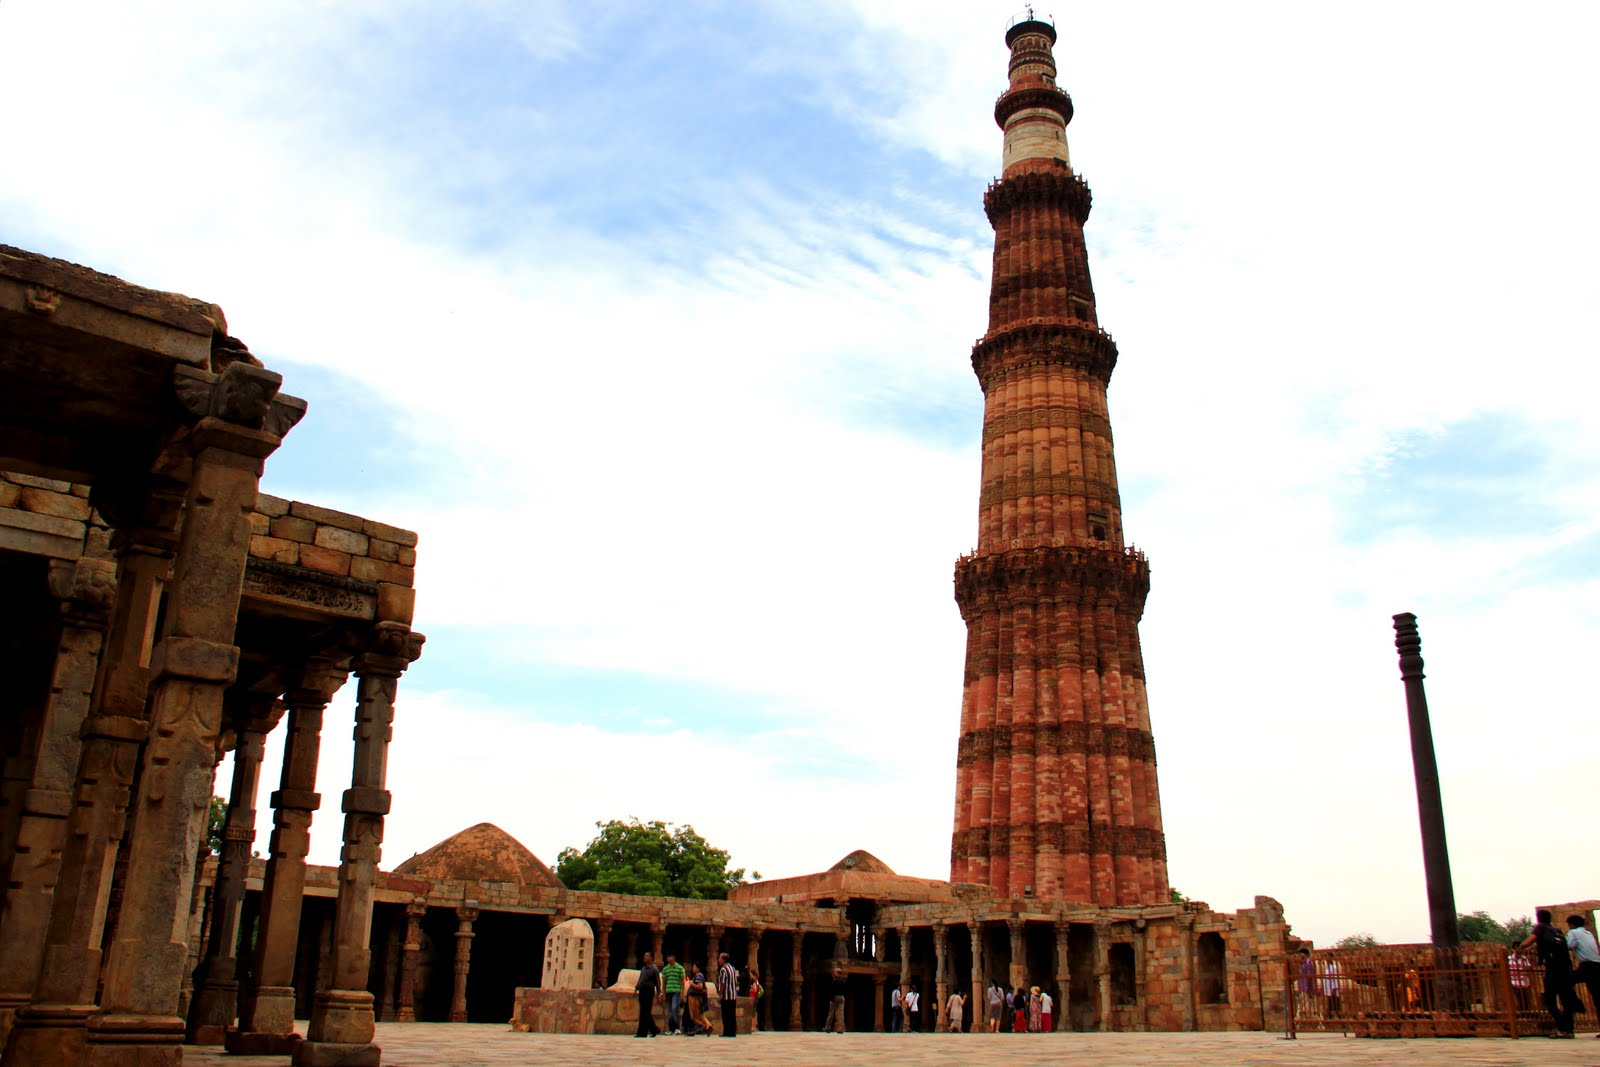 qutub minar Qutab minar in delhi is among the tallest and famous towers in the world qutub minar is also famous for its architecture, history, design.